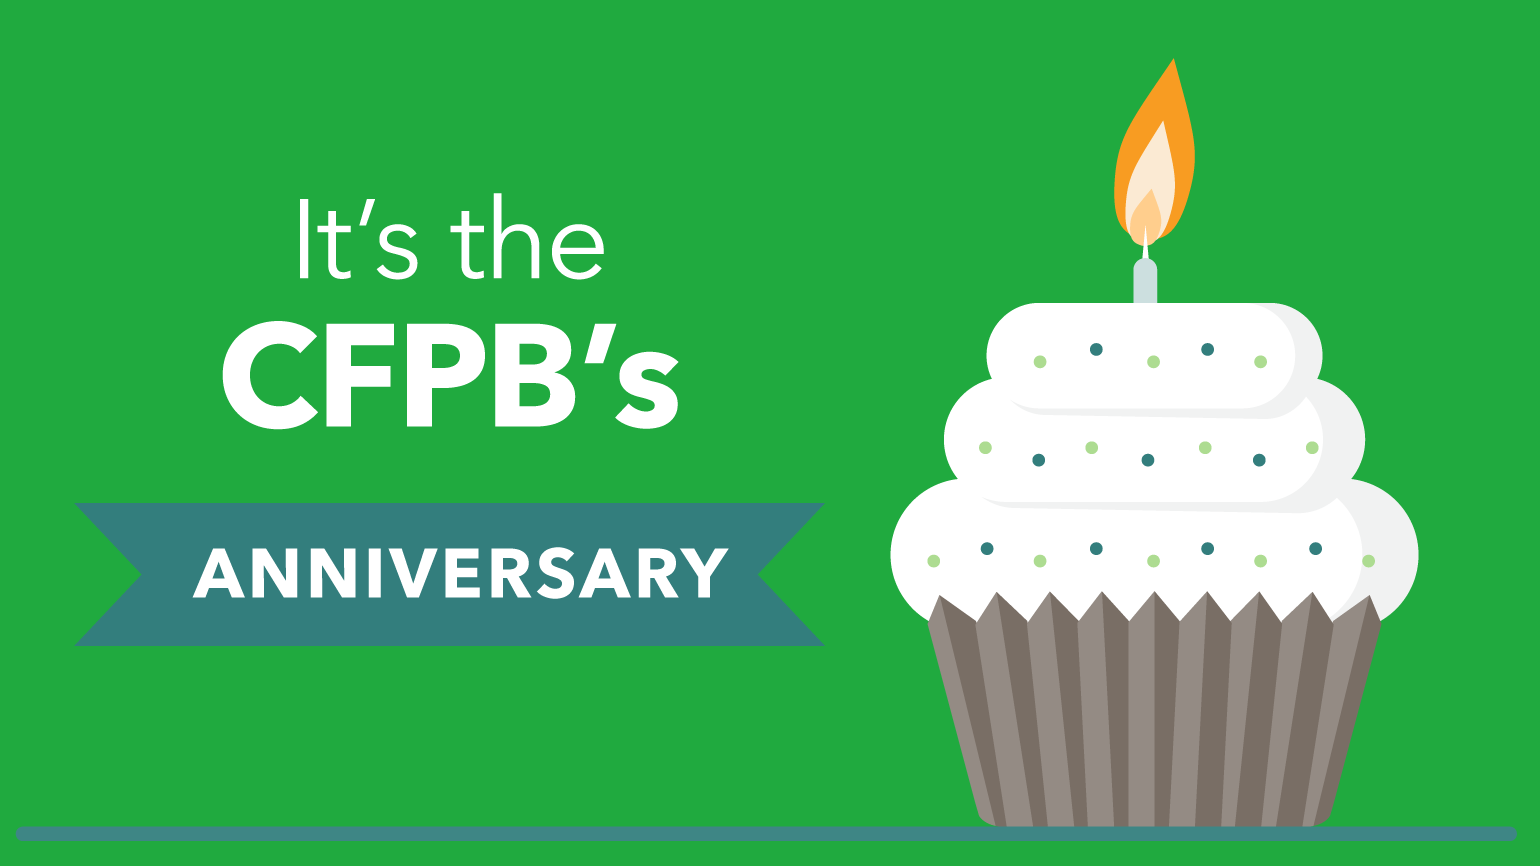 It's the CFPB's anniversary